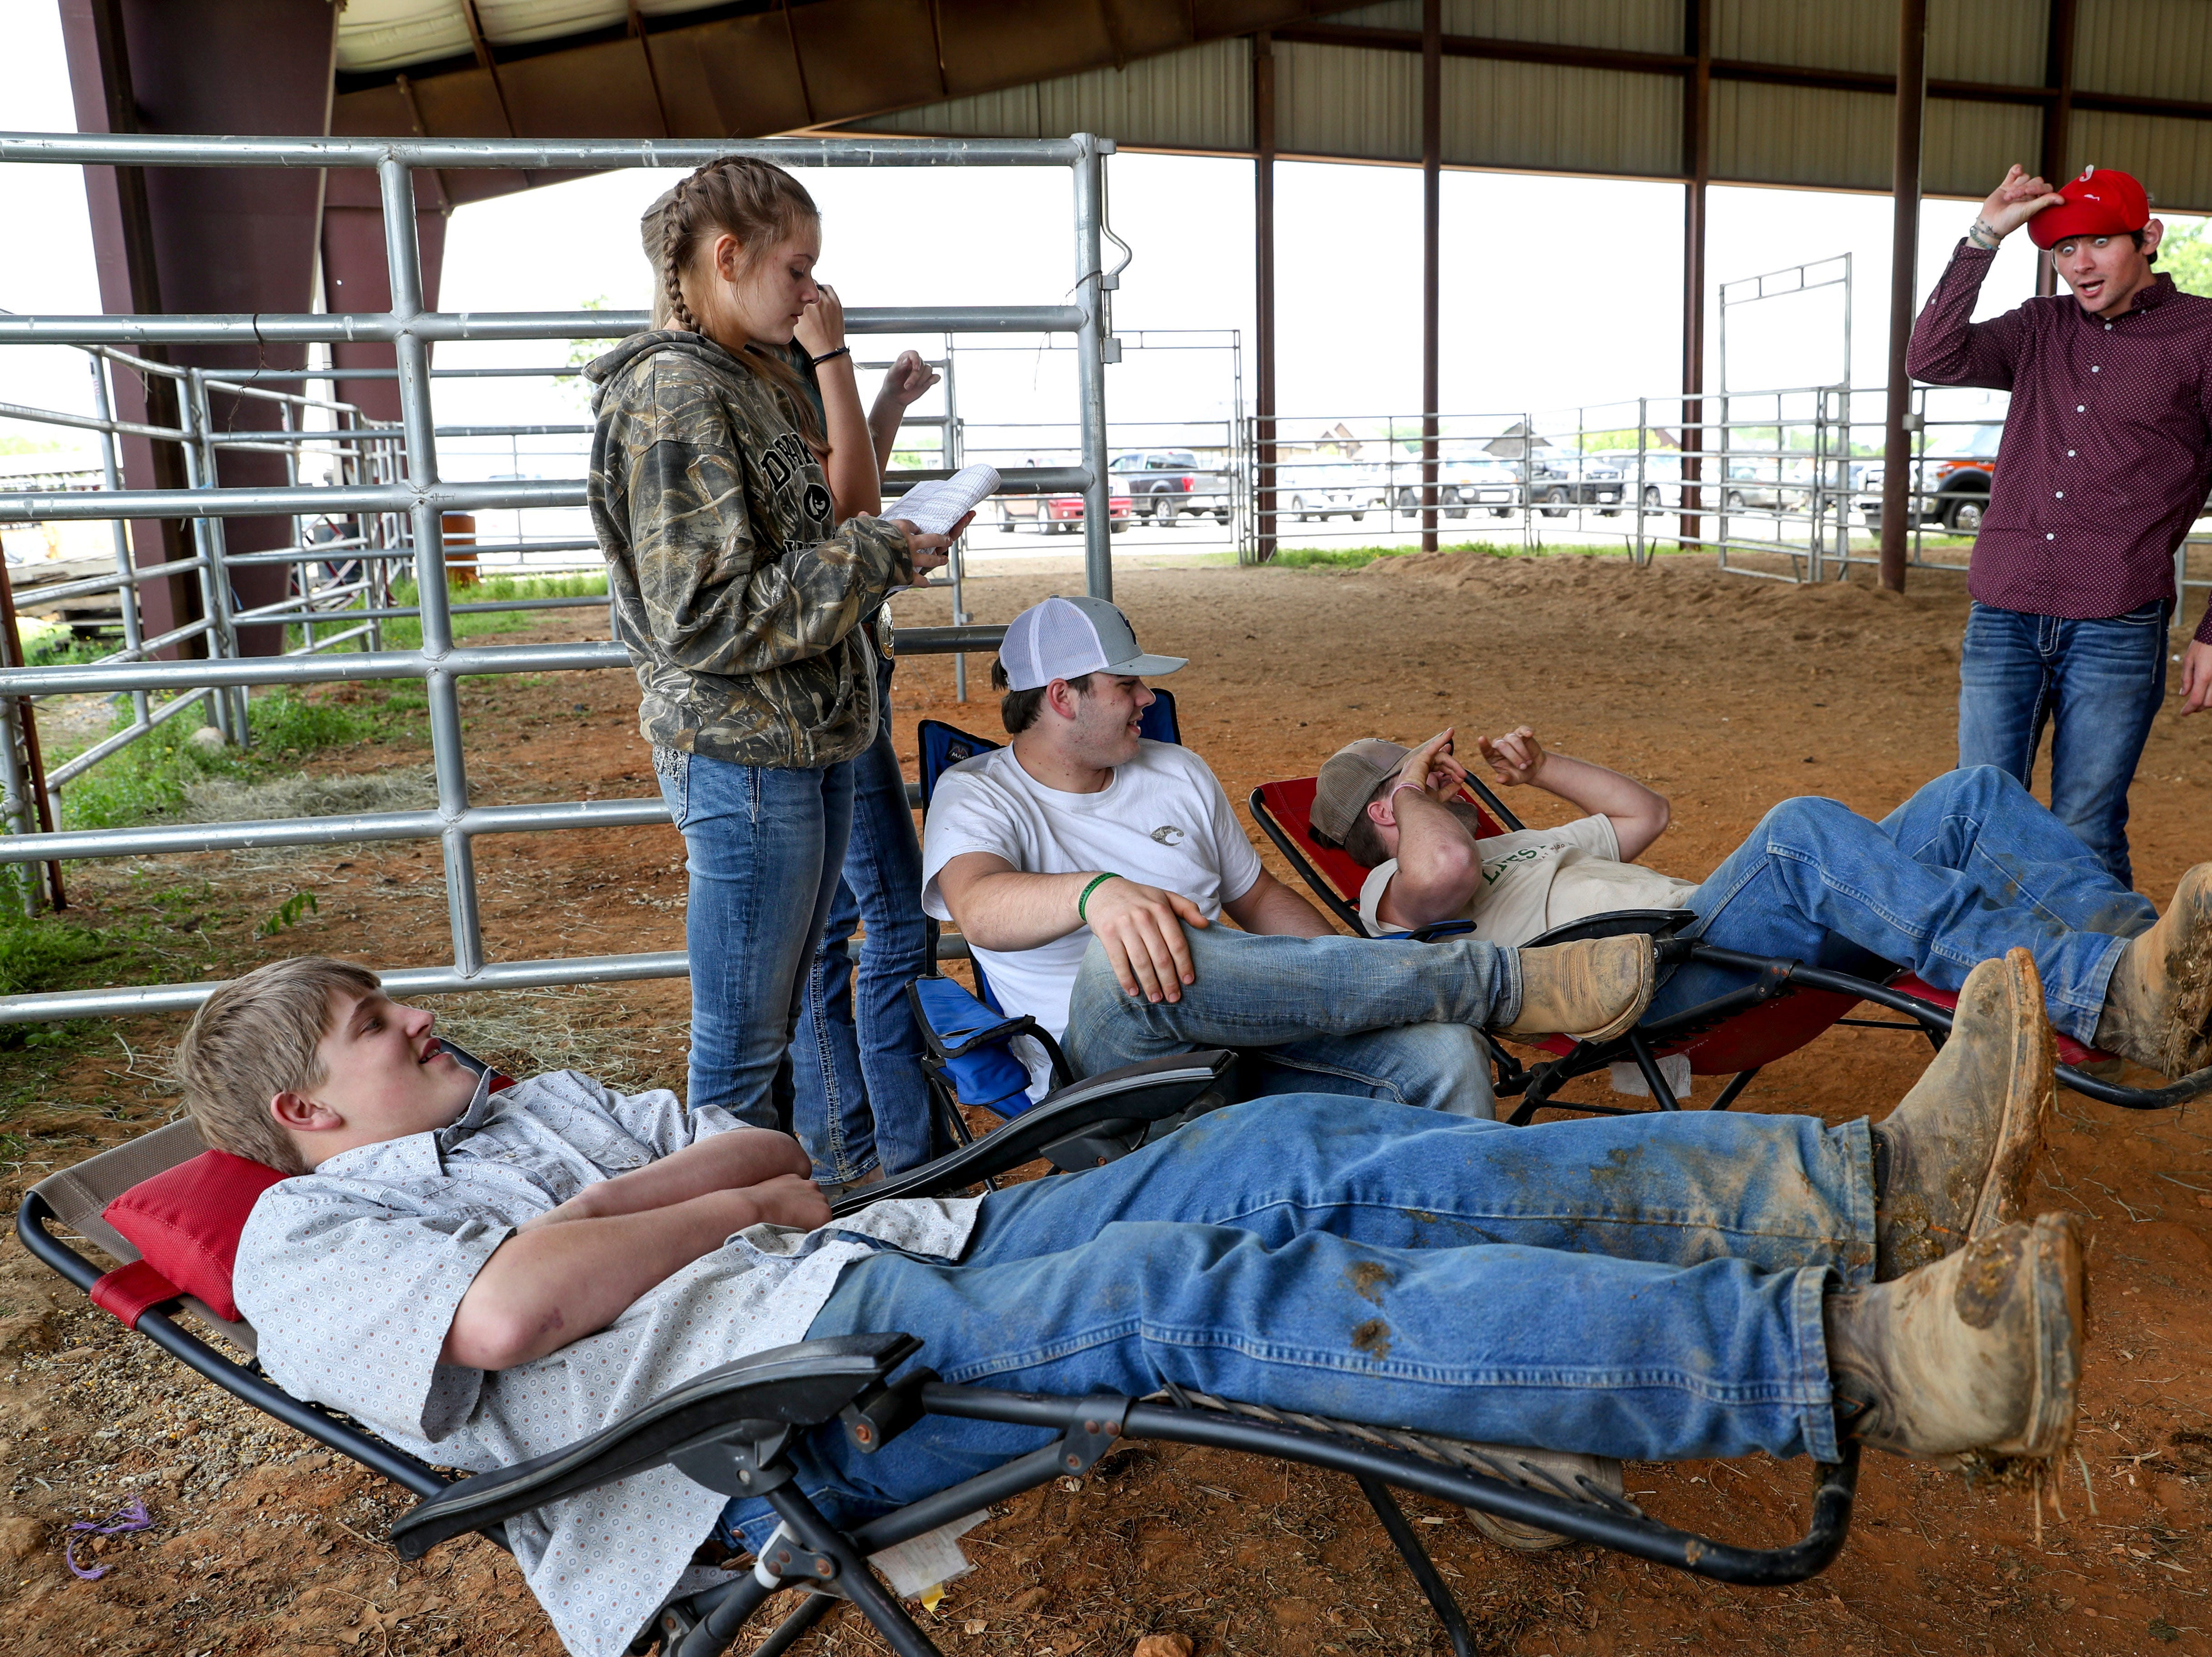 Friends lean back and joke around while the auction is going on at the 69th annual Clarksville Area Junior Better Beef Show at the John Bartee Agricultural Center in Clarksville, Tenn., on Tuesday, May 14, 2019.